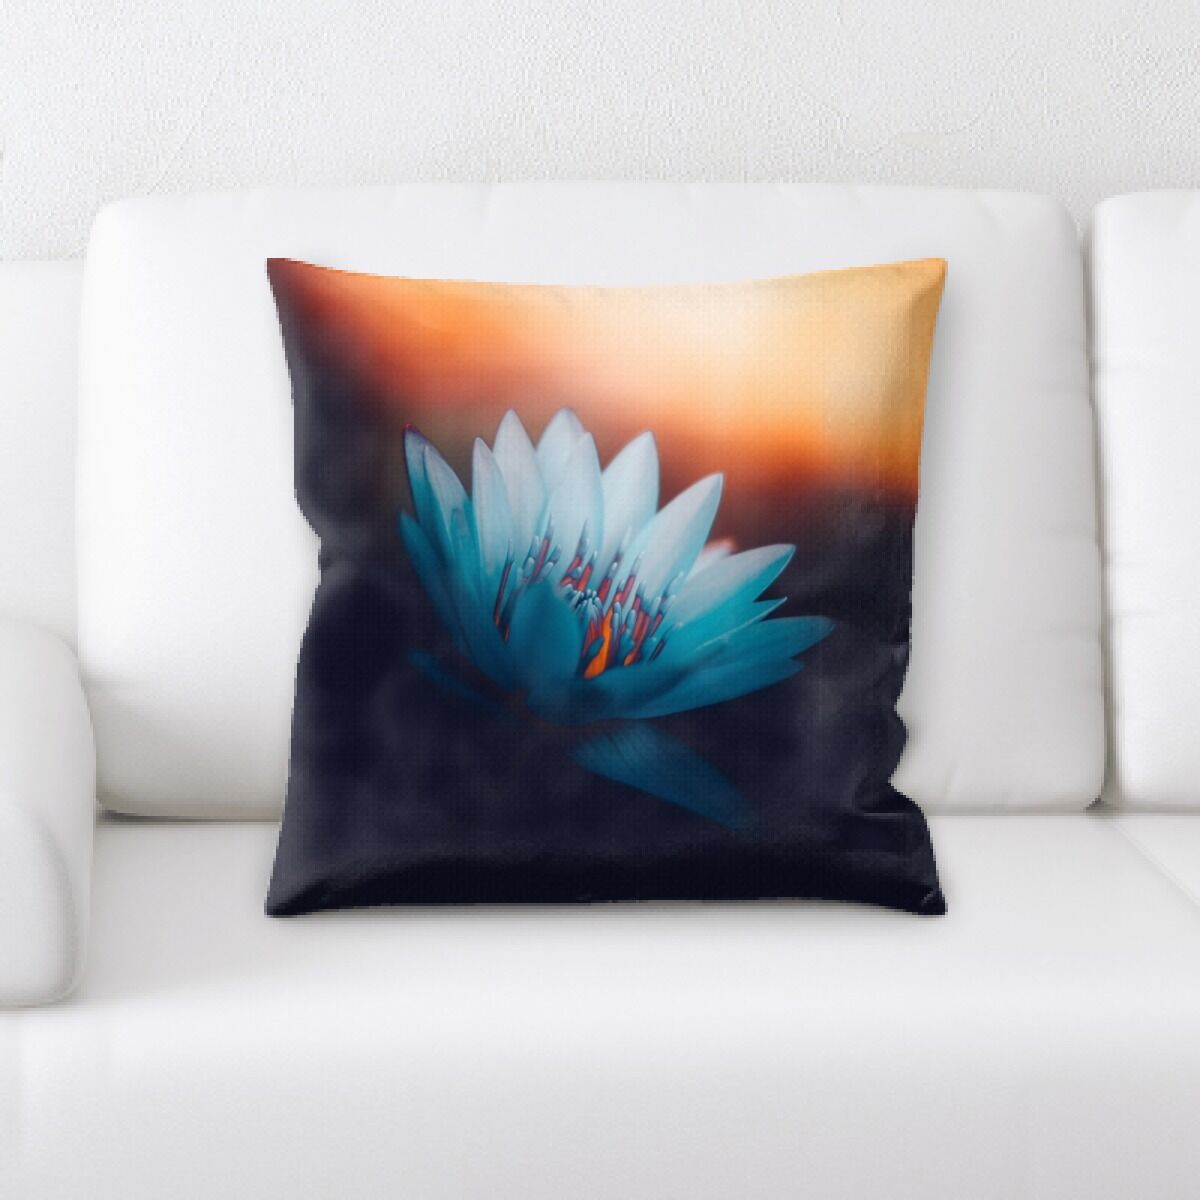 Bowden Meditation and Calming Moments (12) Throw Pillow